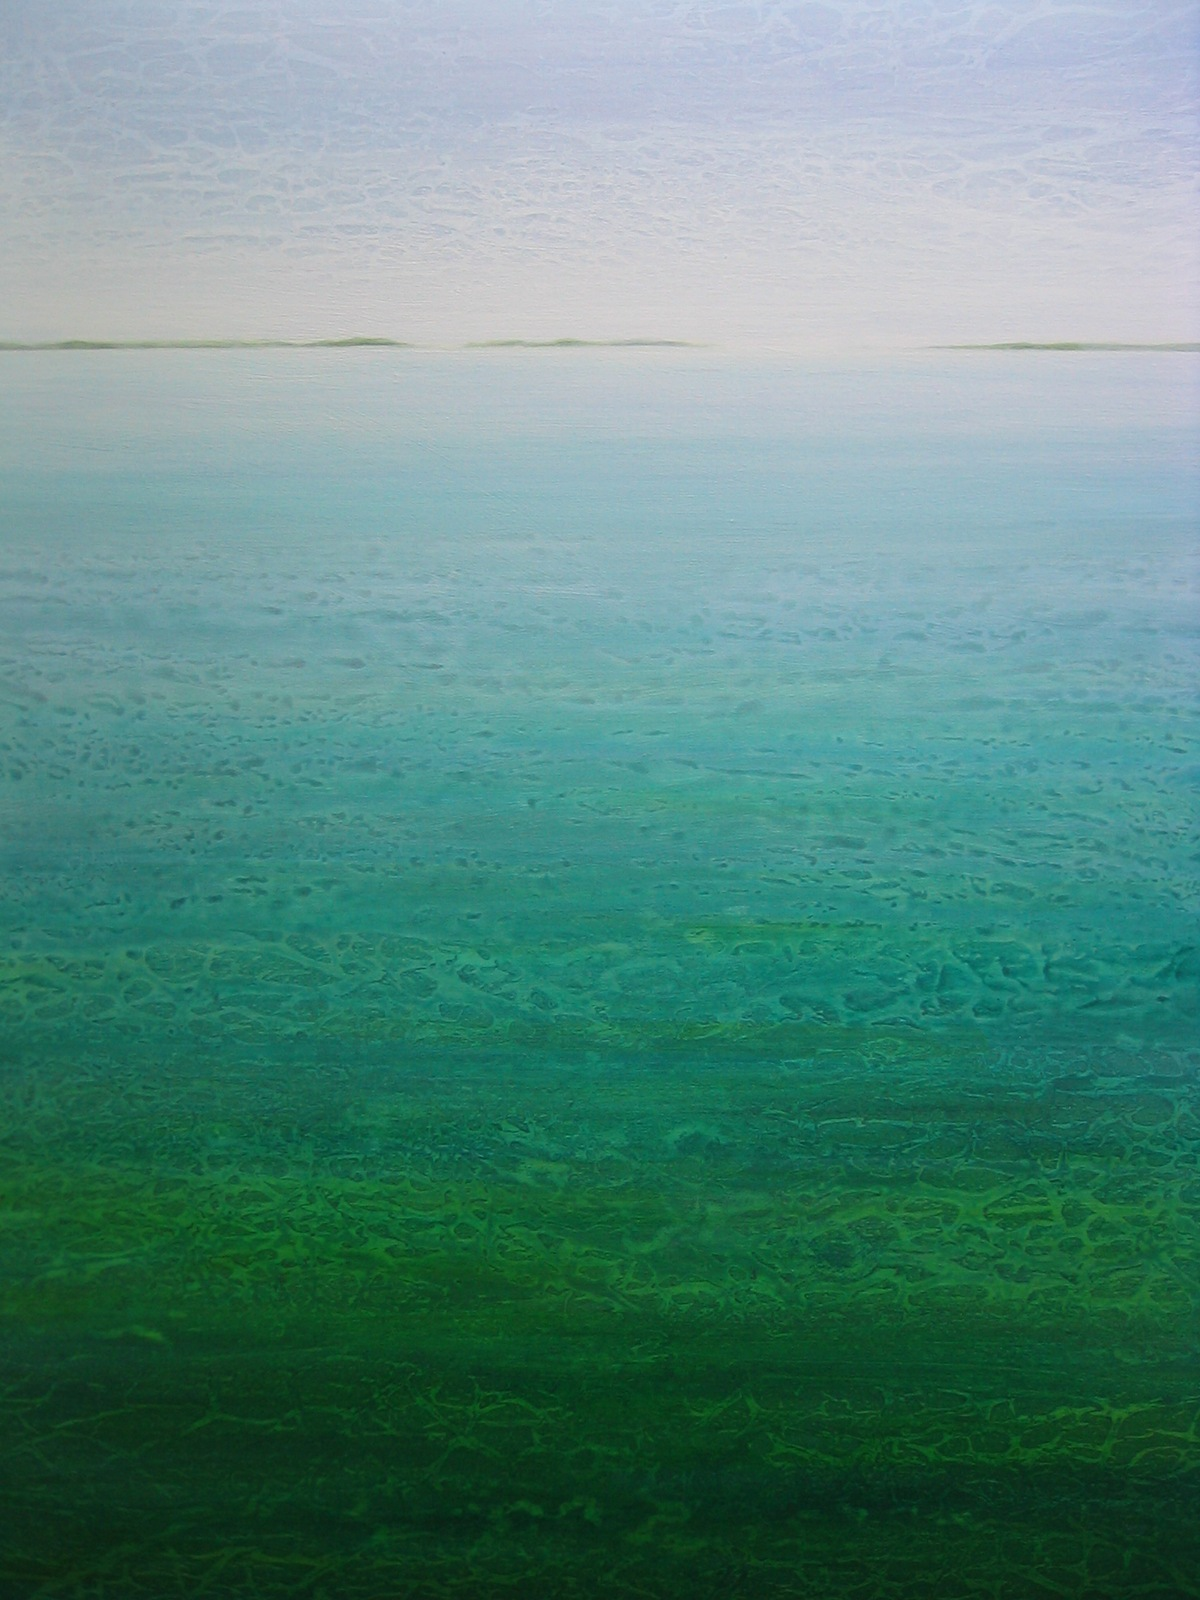 """Lagoon"" 48x36 inches, acrylic on canvas, ©2010 Maro Lorimer"